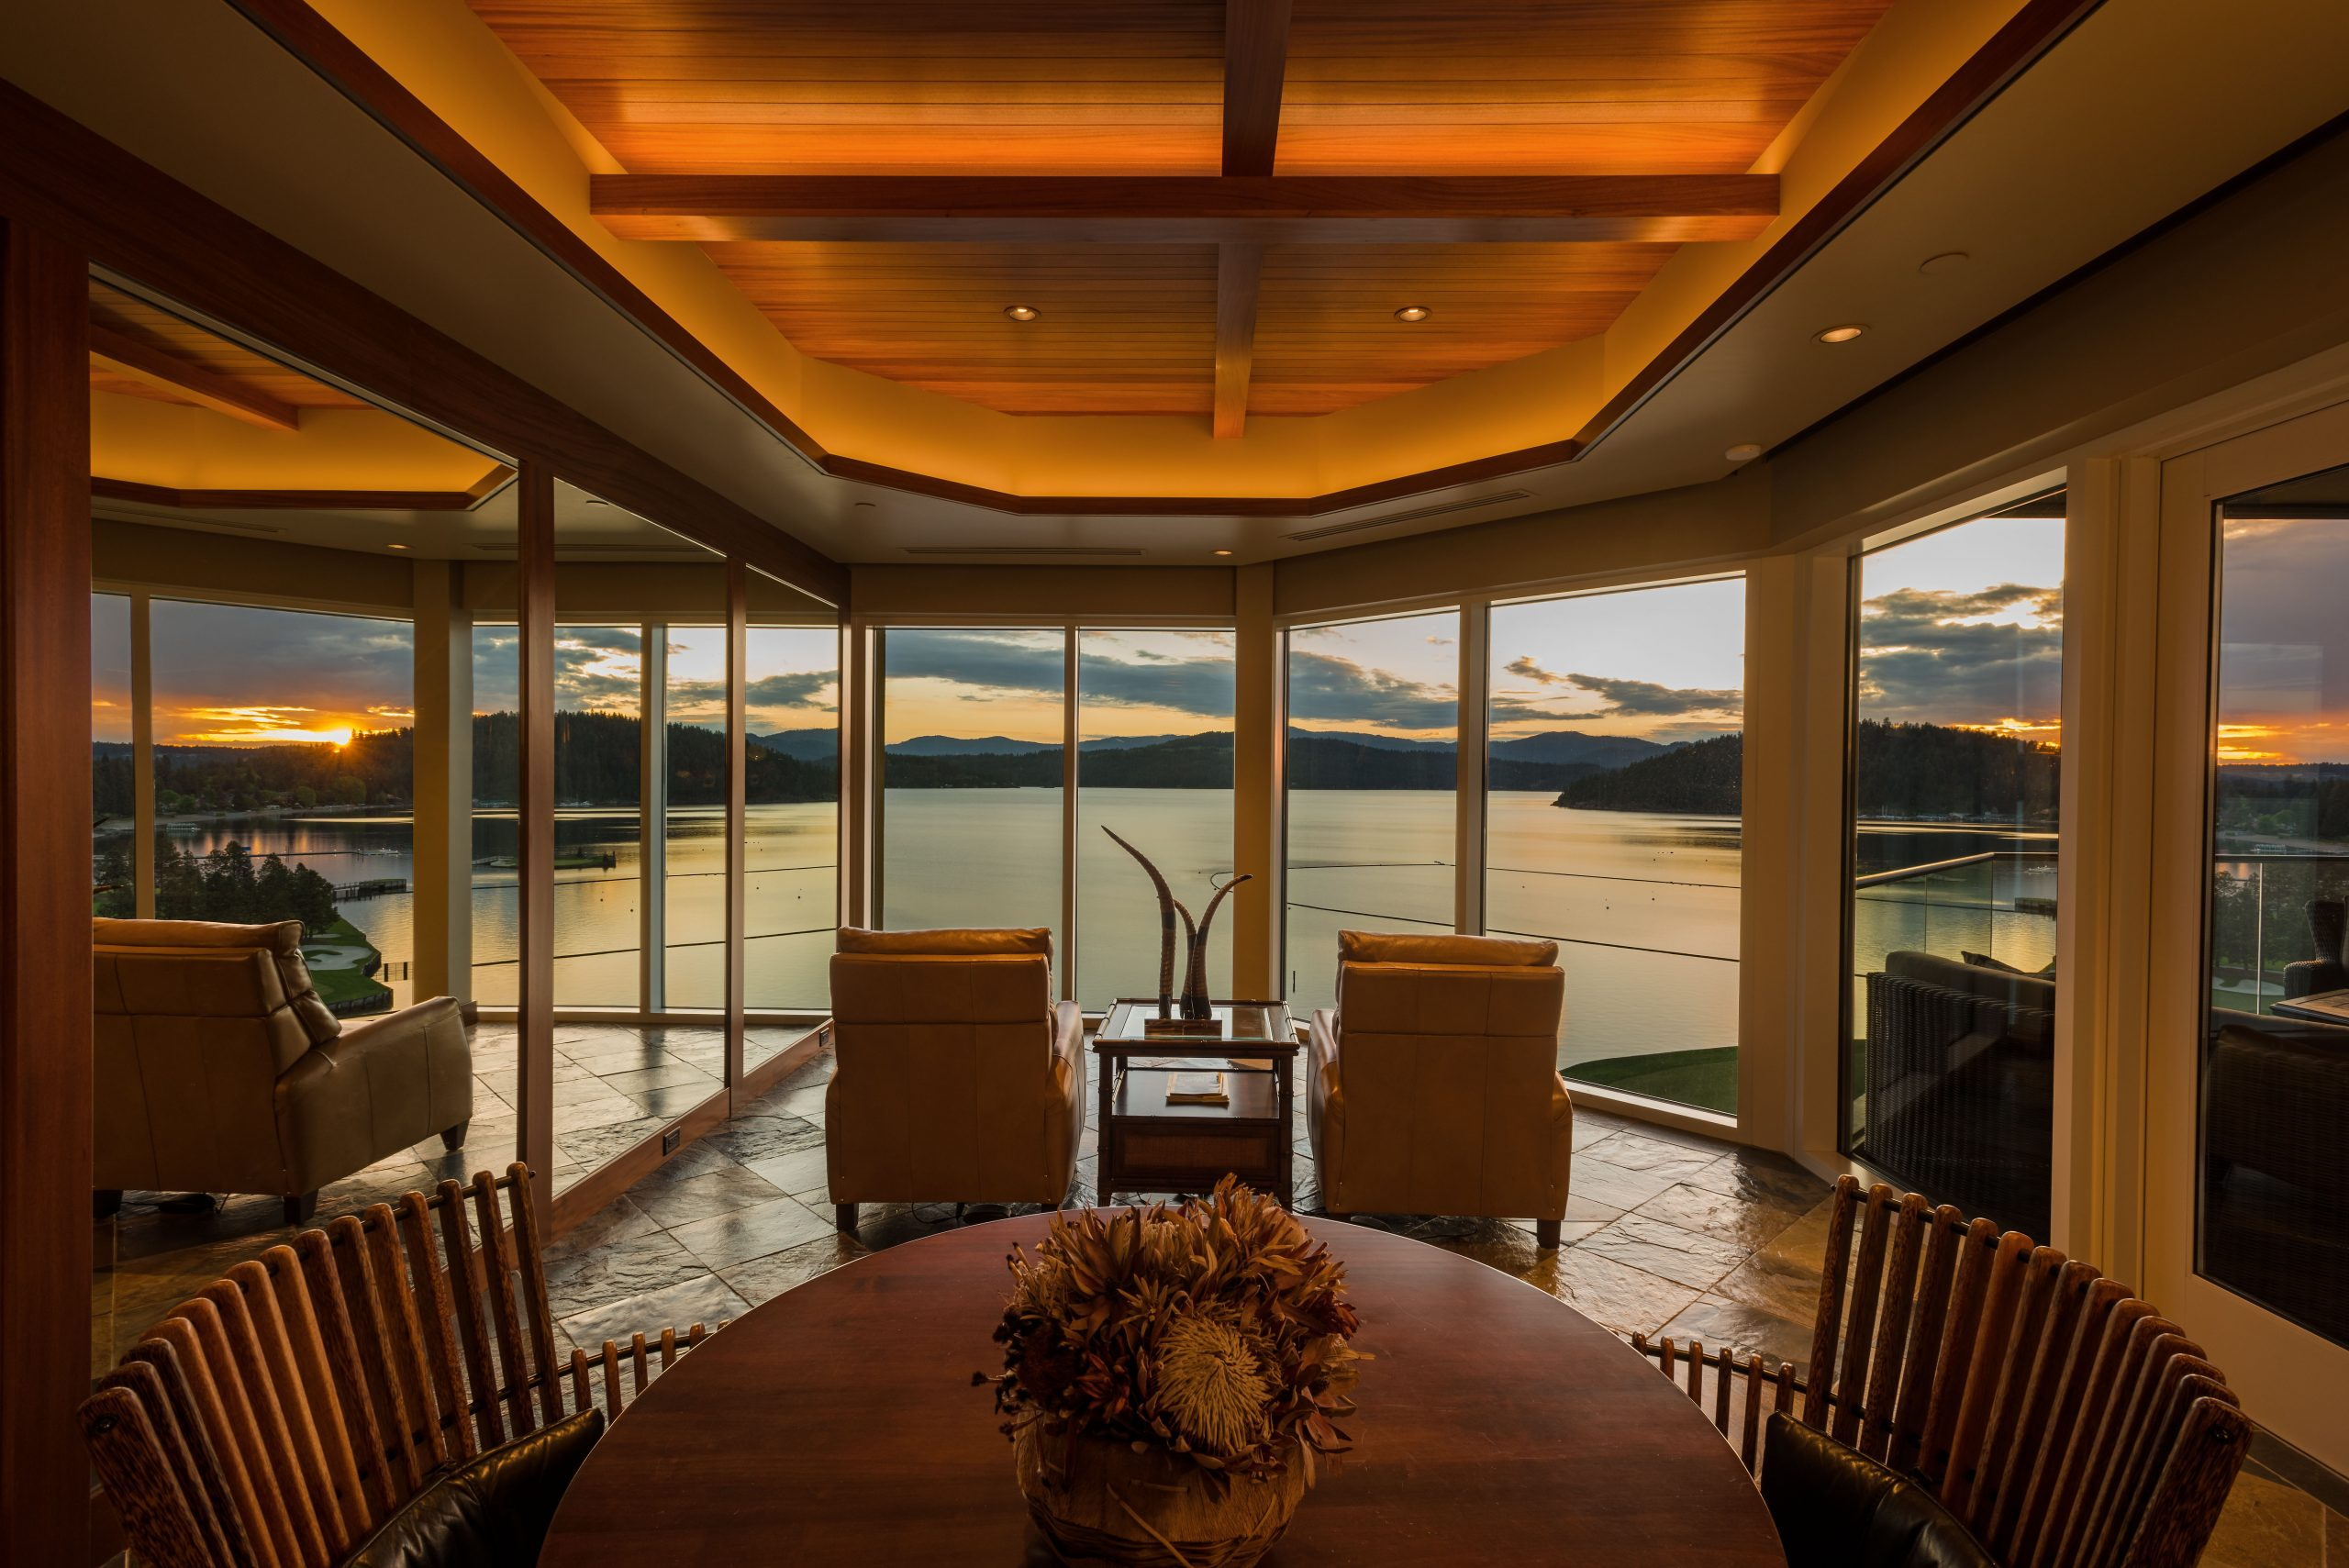 This project was an interior improvement of a terrace condo that overlooks beautiful Lake Coeur d'Alene in Idaho.